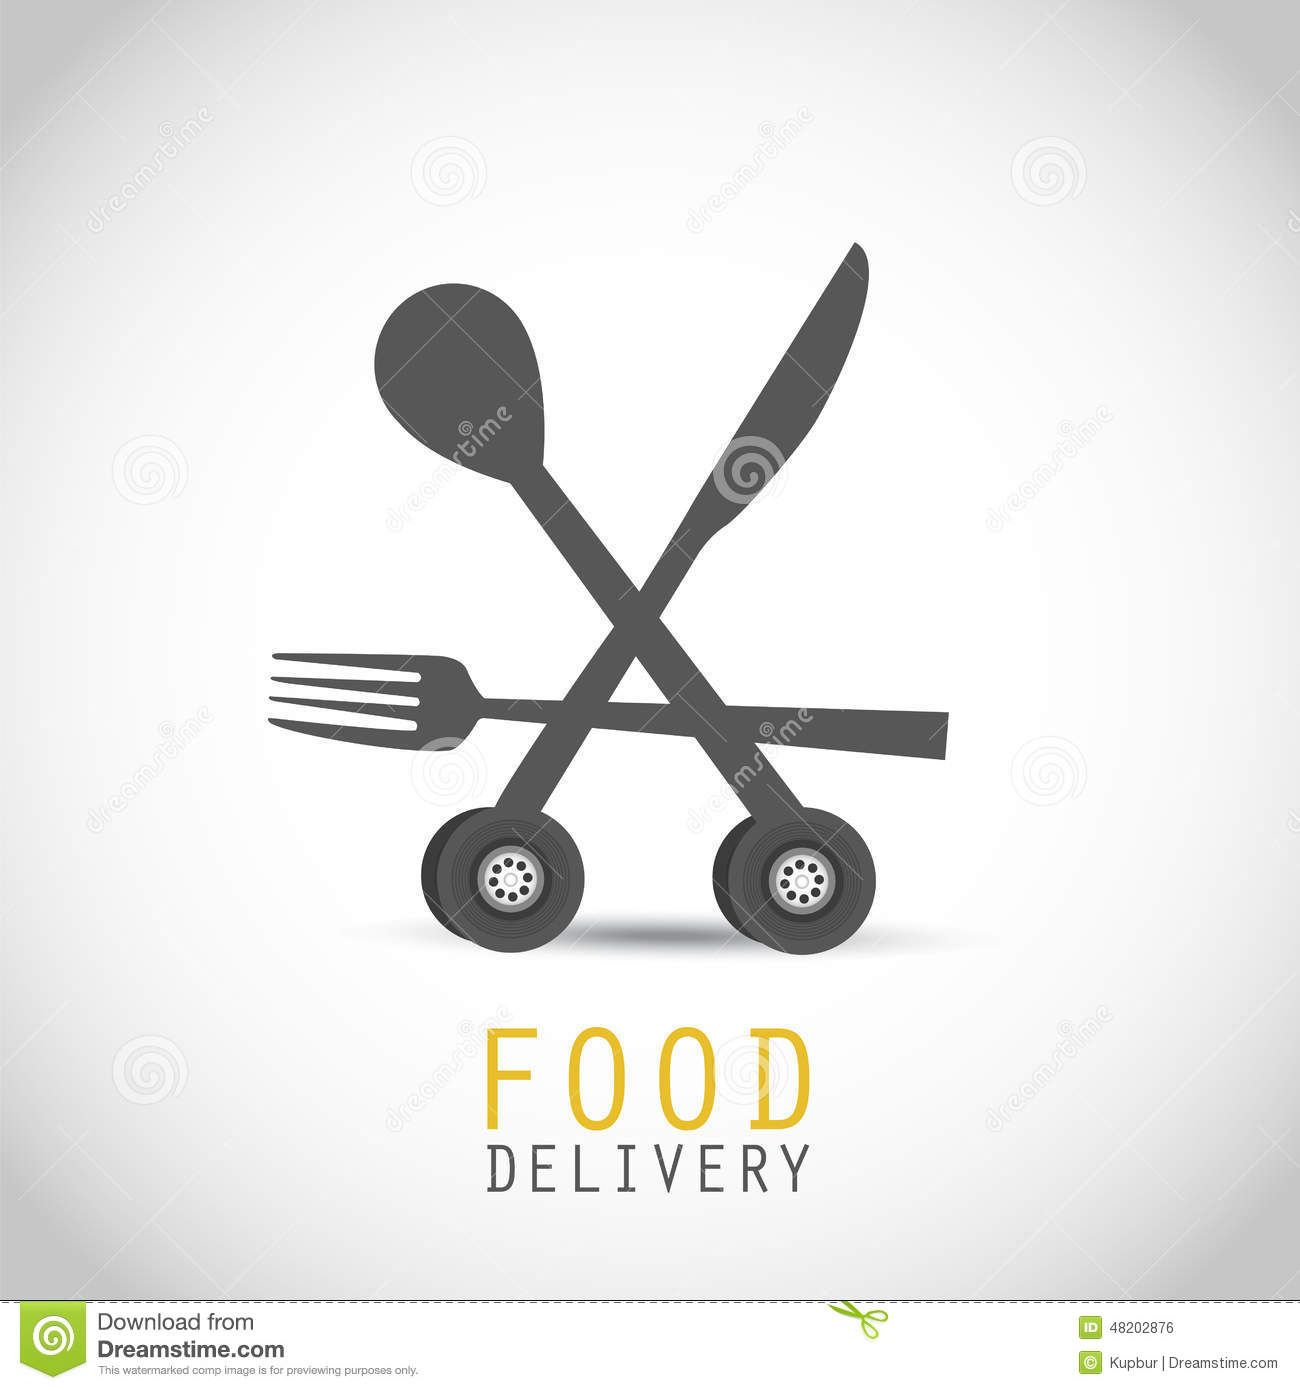 Food Delivery Design Download From Over 58 Million High Quality